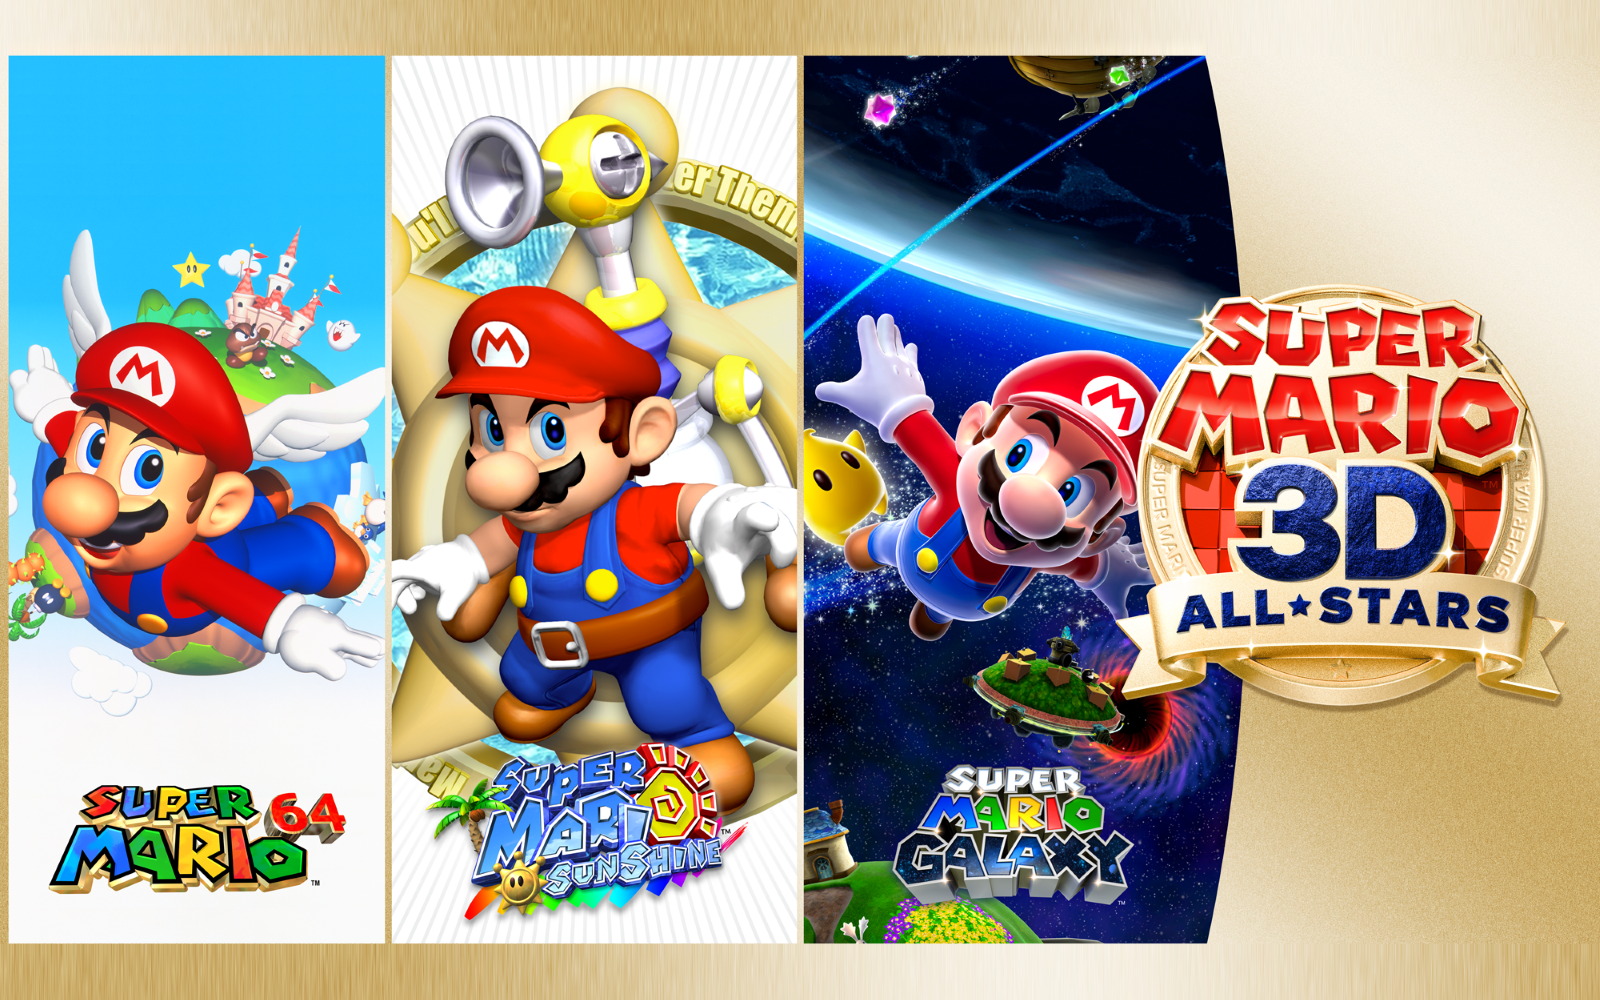 Super Mario 3D All-Stars Finally Confirmed & Releases In September